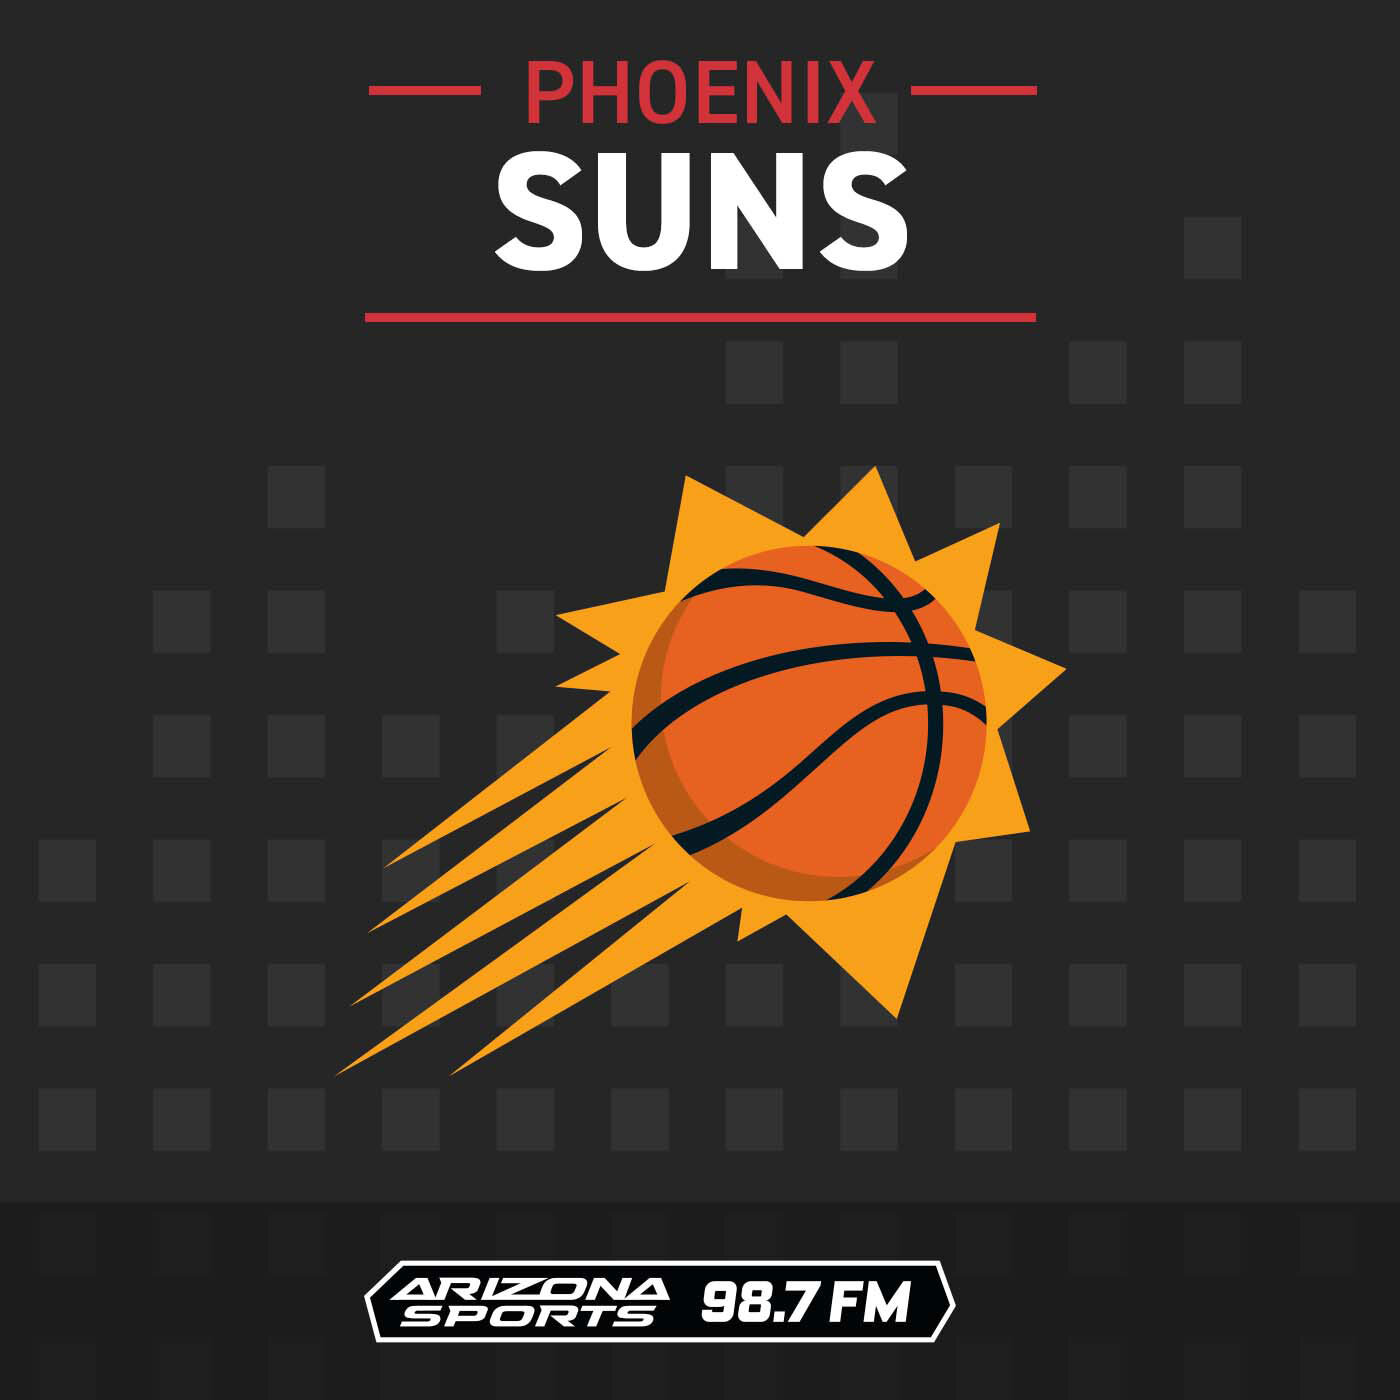 Phoenix Suns Podcast Channel Cover Image